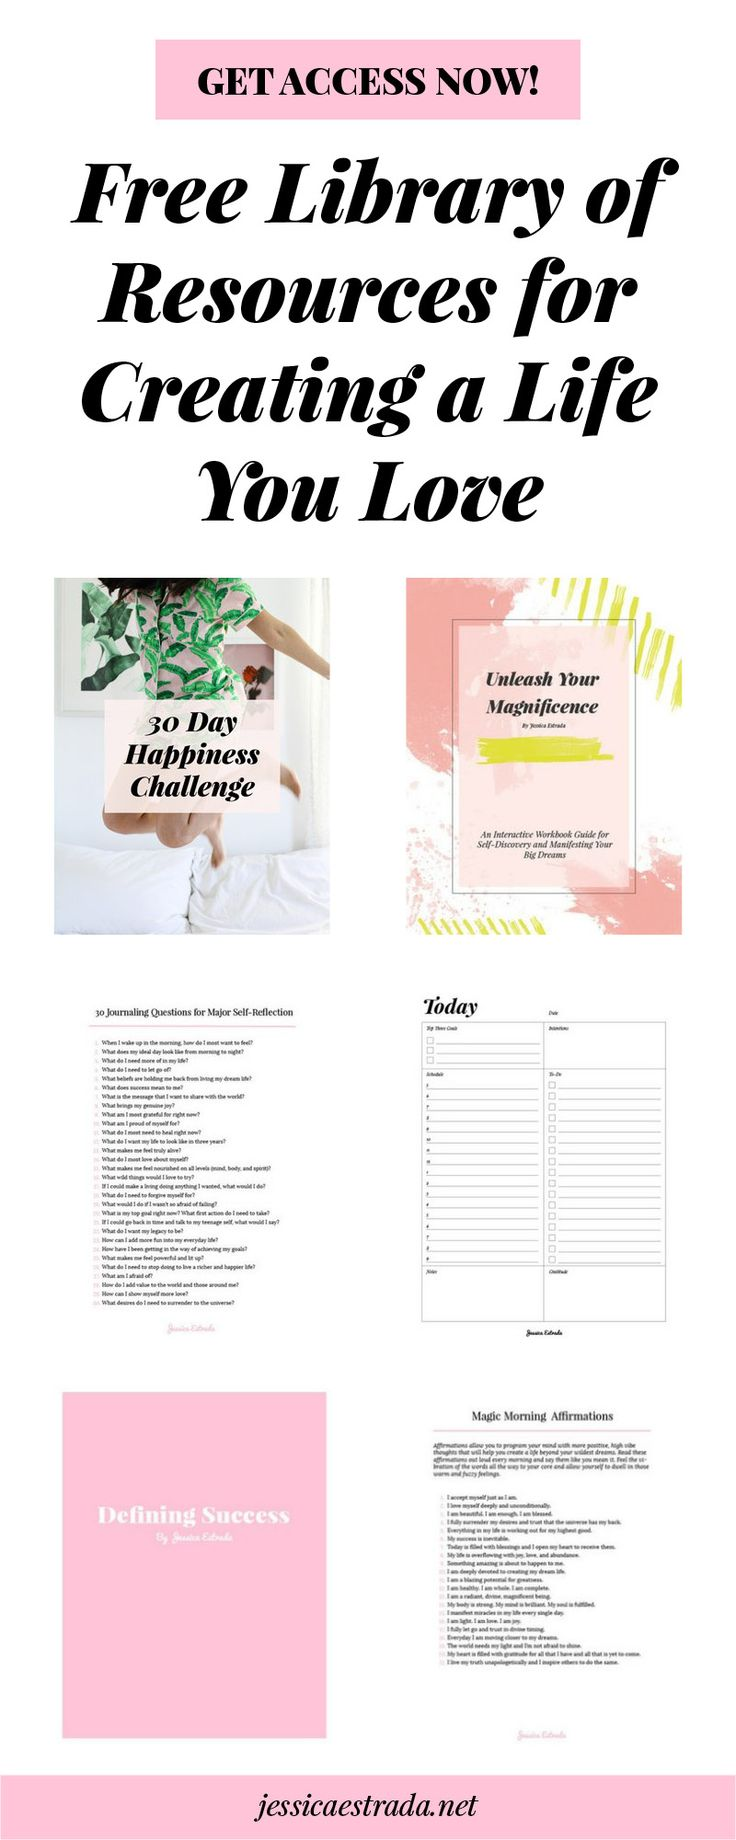 Want tons of FREE resources to help you create a life you love? This library of goodies is full of ebooks, workbooks, checklists, printables, worksheets, interactive challenges, and so much more fun stuff covering topics like self-love, self-care, personal growth, self help, productivity, manifesting, and journaling—all for free!